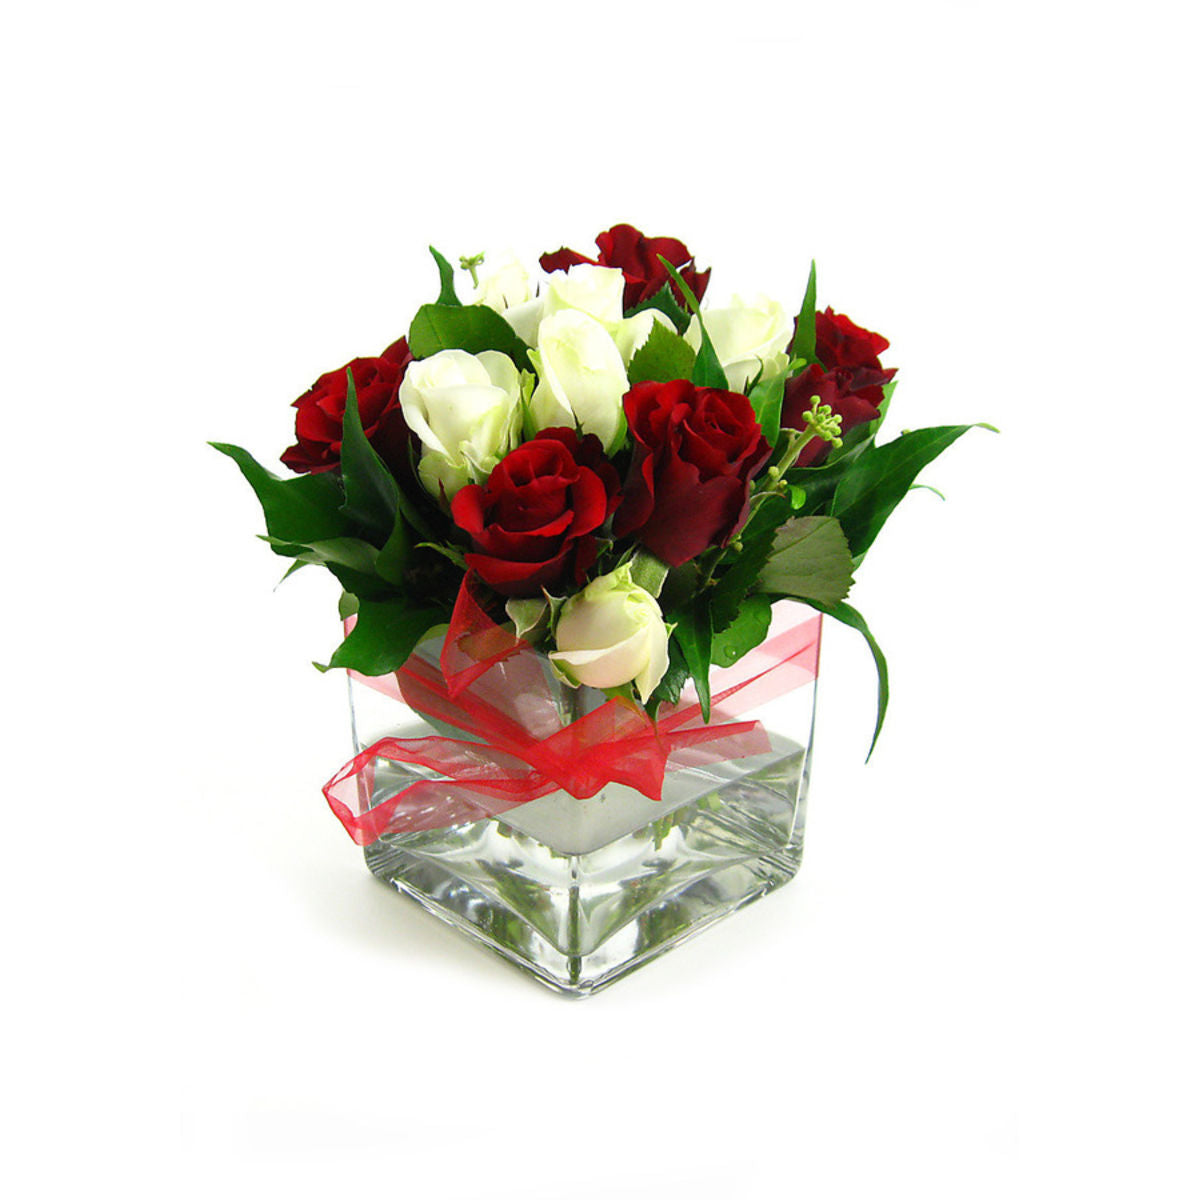 Red & White Rose Vase